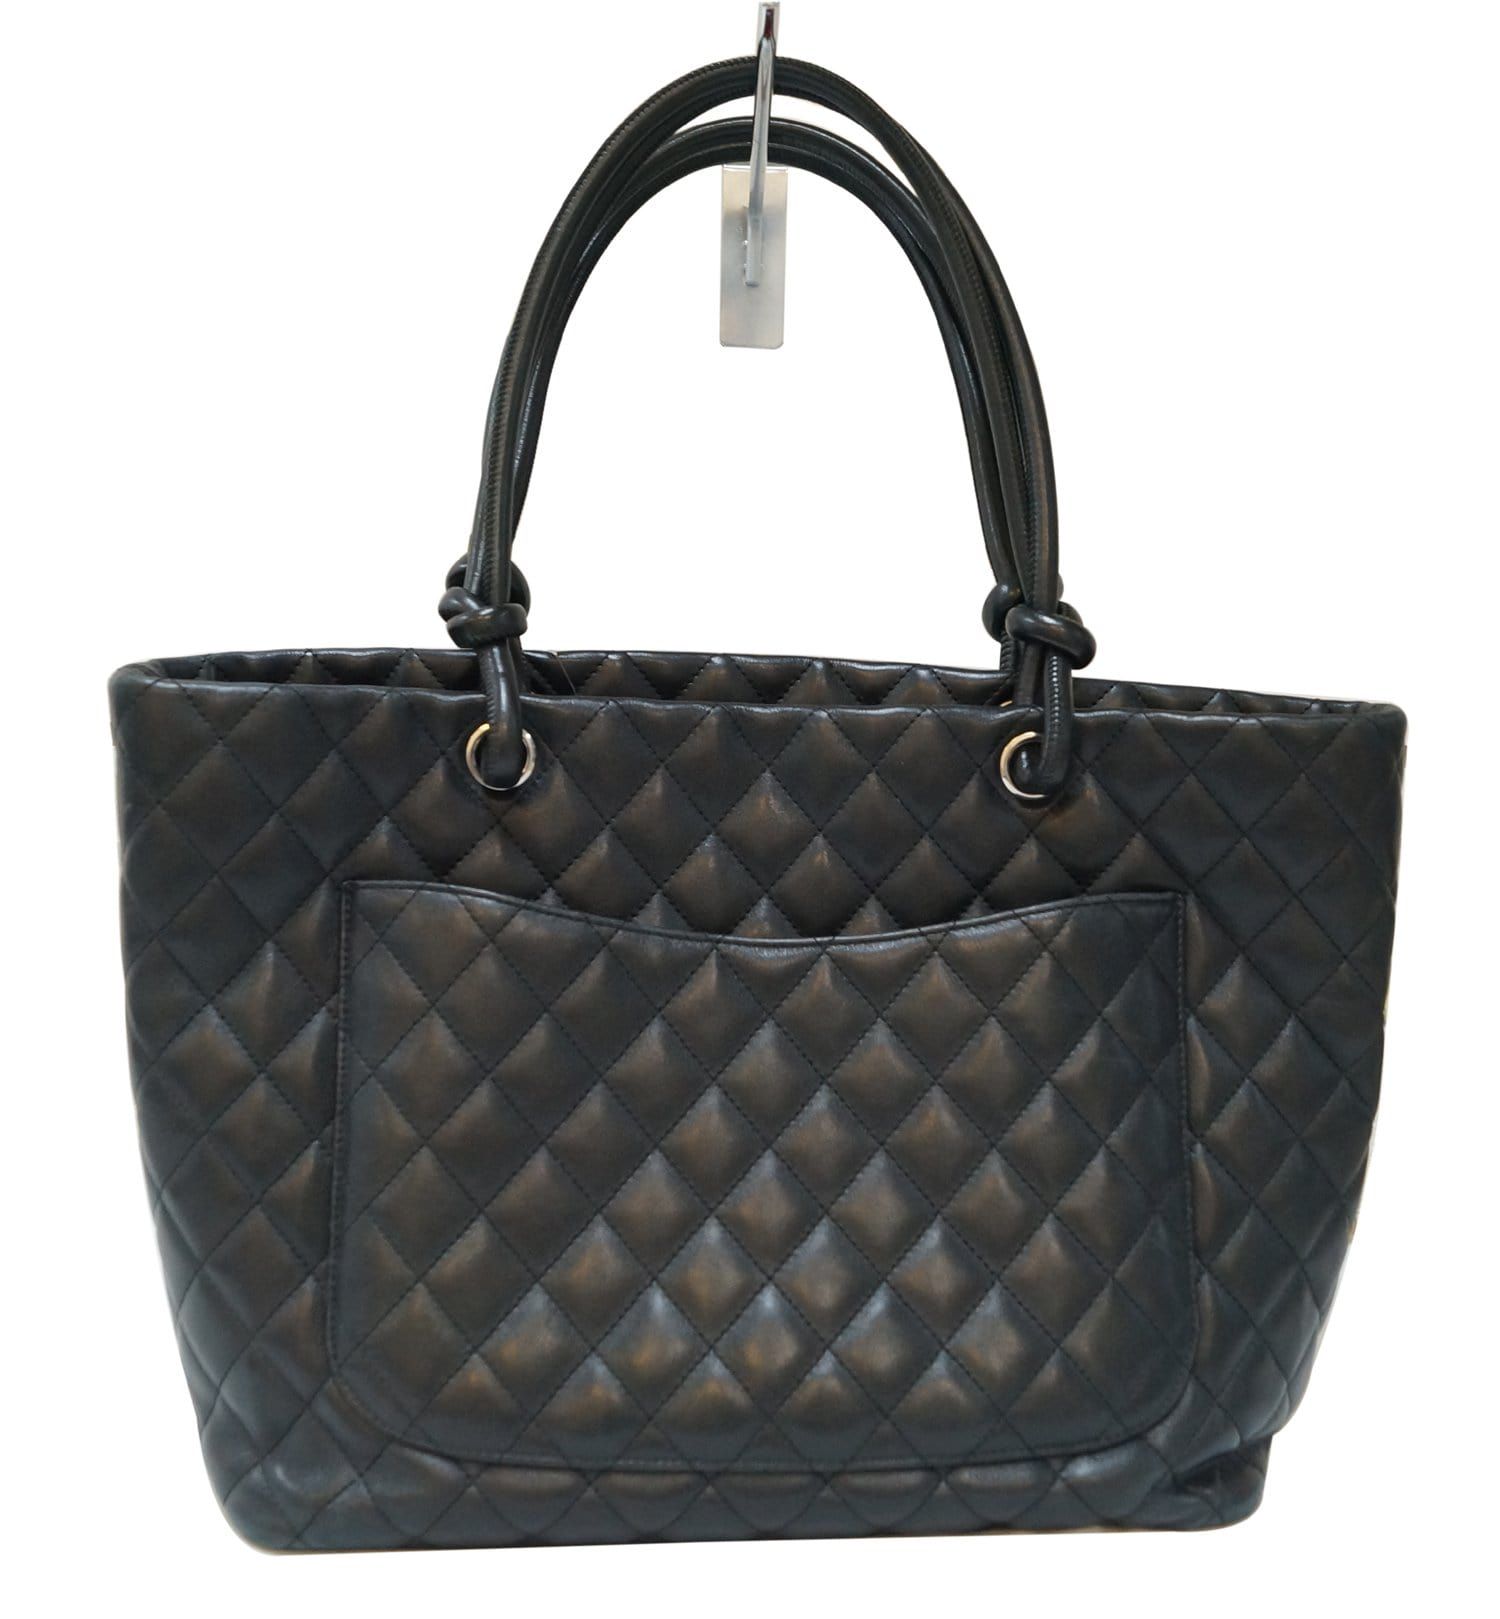 1c6218fc72d2 CHANEL Black Quilted Leather Large Cambon Tote Bag